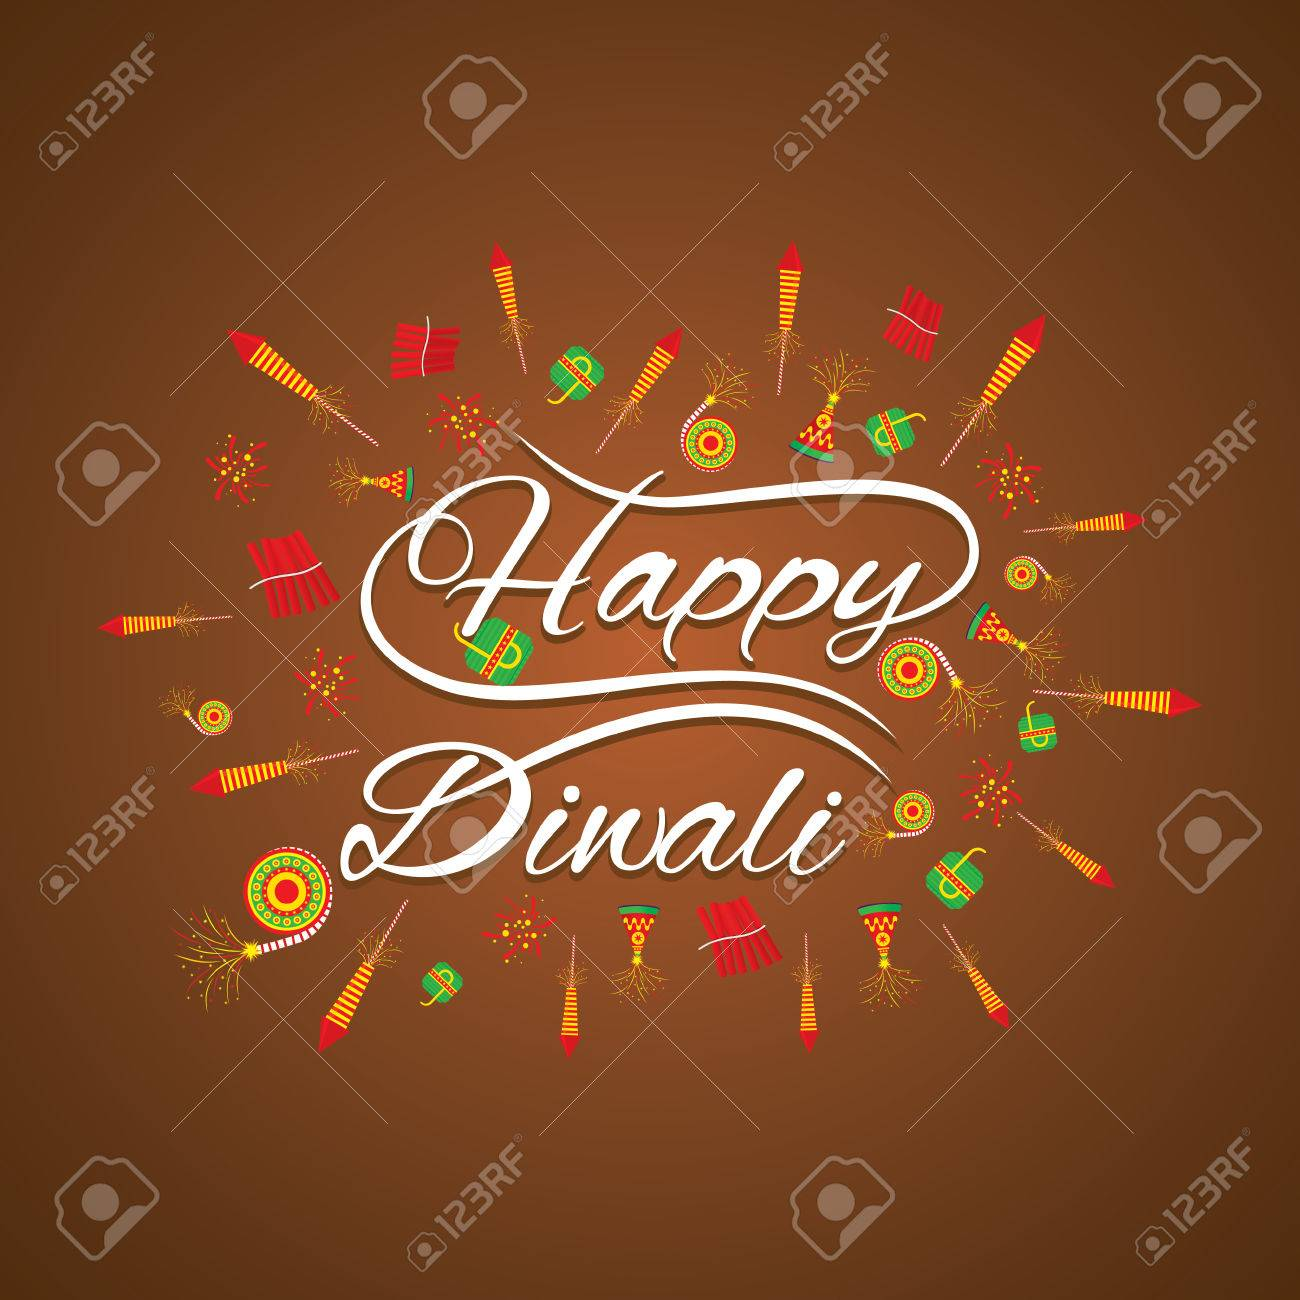 Happy Diwali Greeting Card With Fire Cracker Design Royalty Free